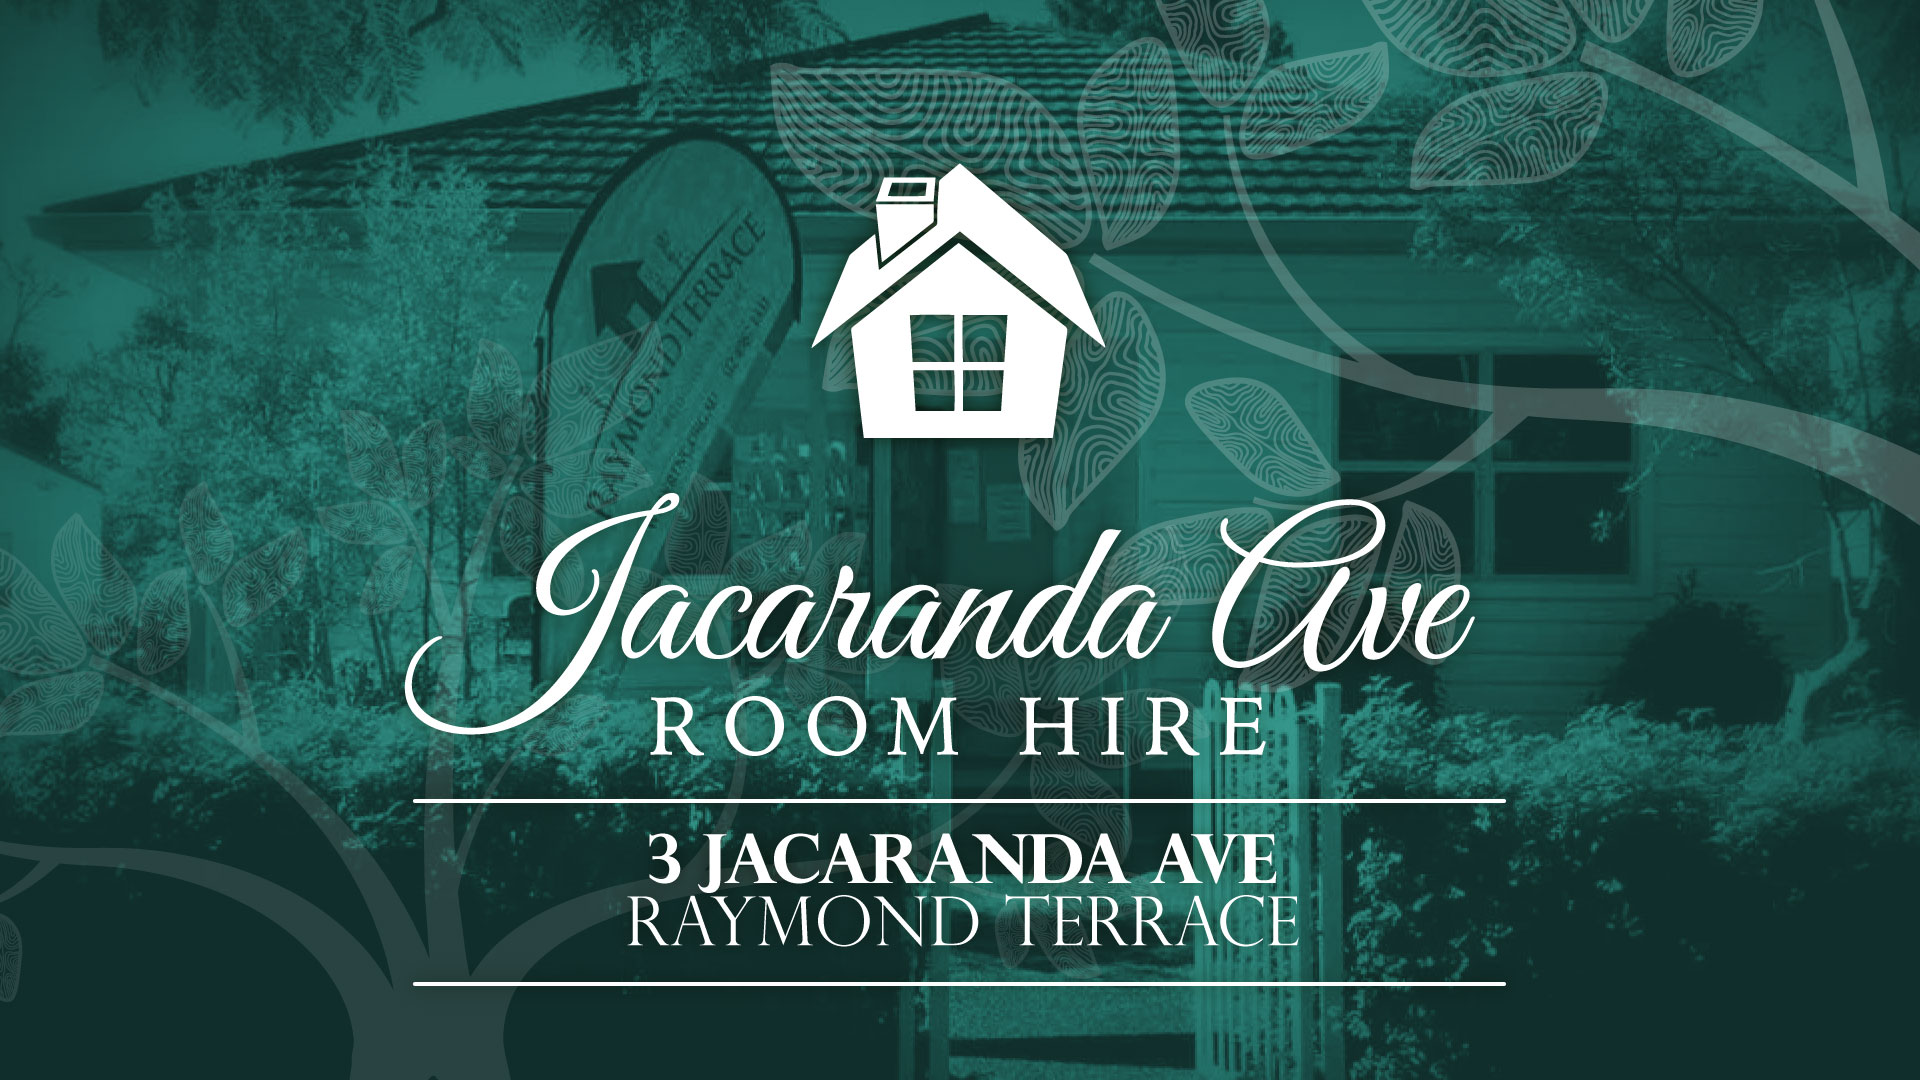 Jacaranda Ave Room Hire